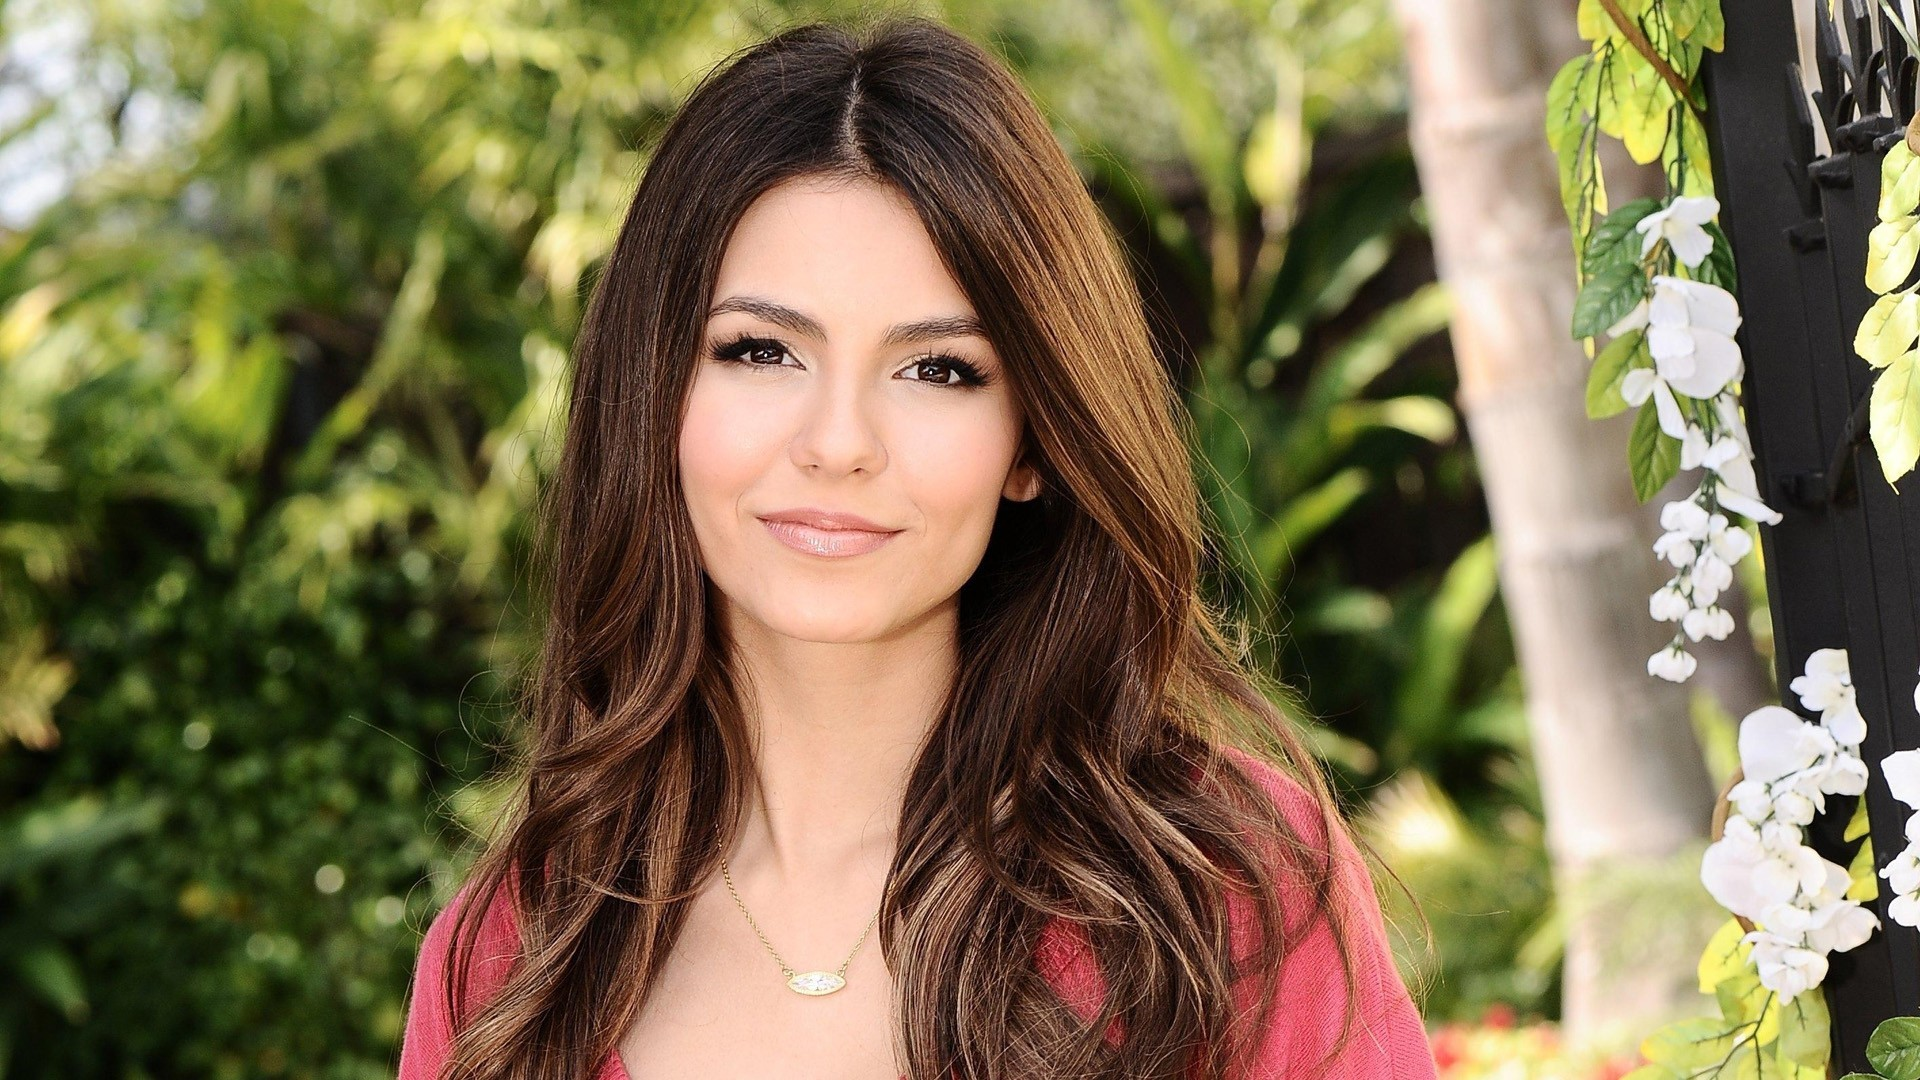 ... Actresses From The United States Of America Victoria Justice 355018